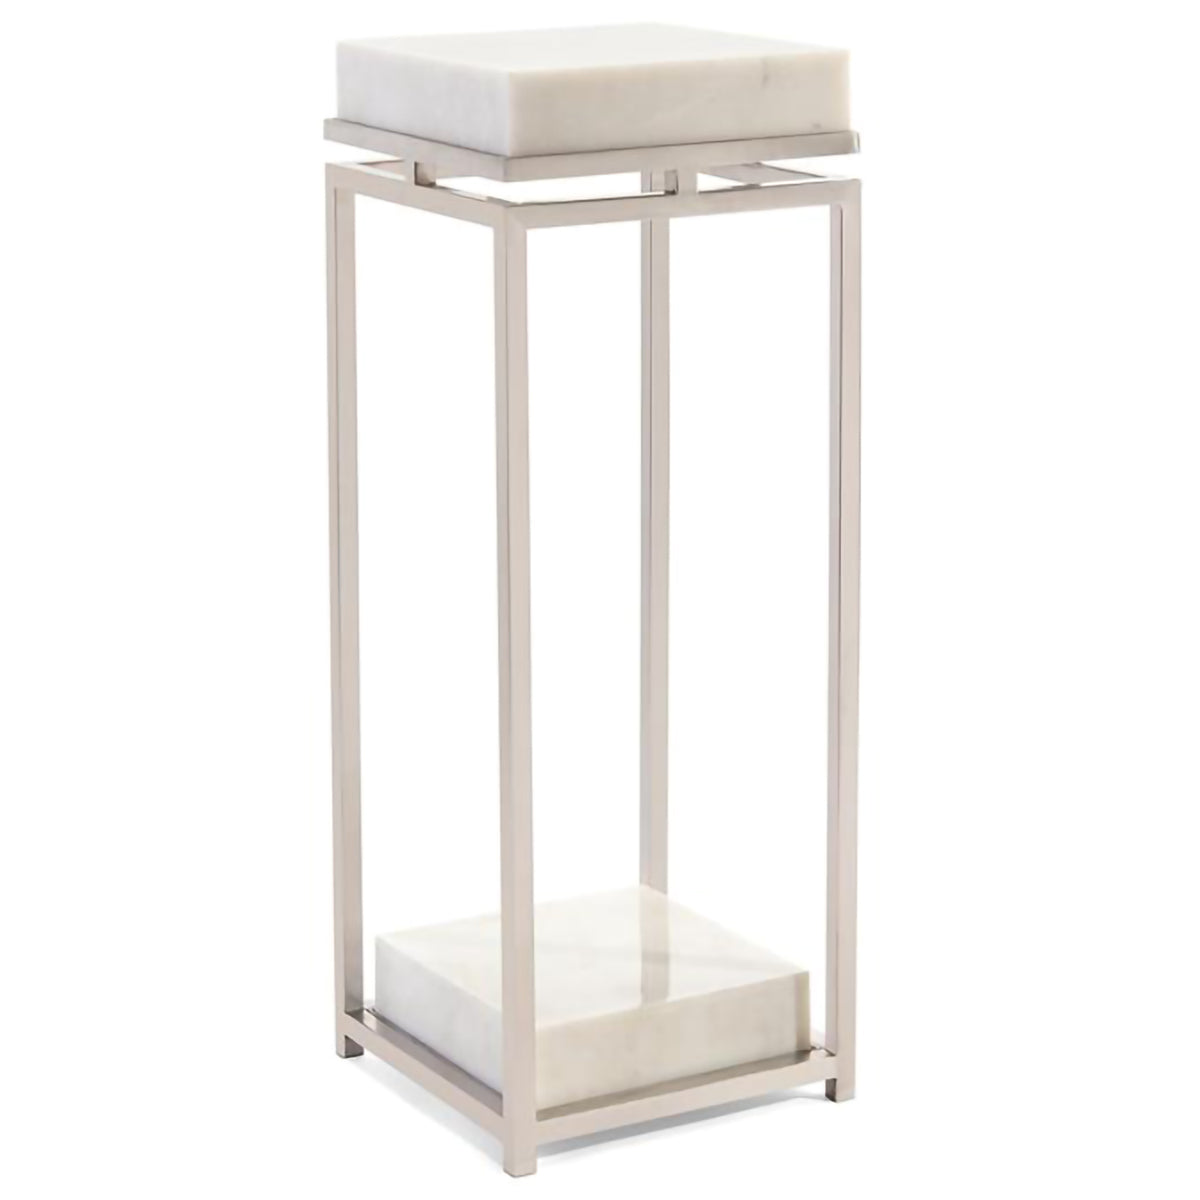 Elegant Stainless Steel and Marble Pedestal